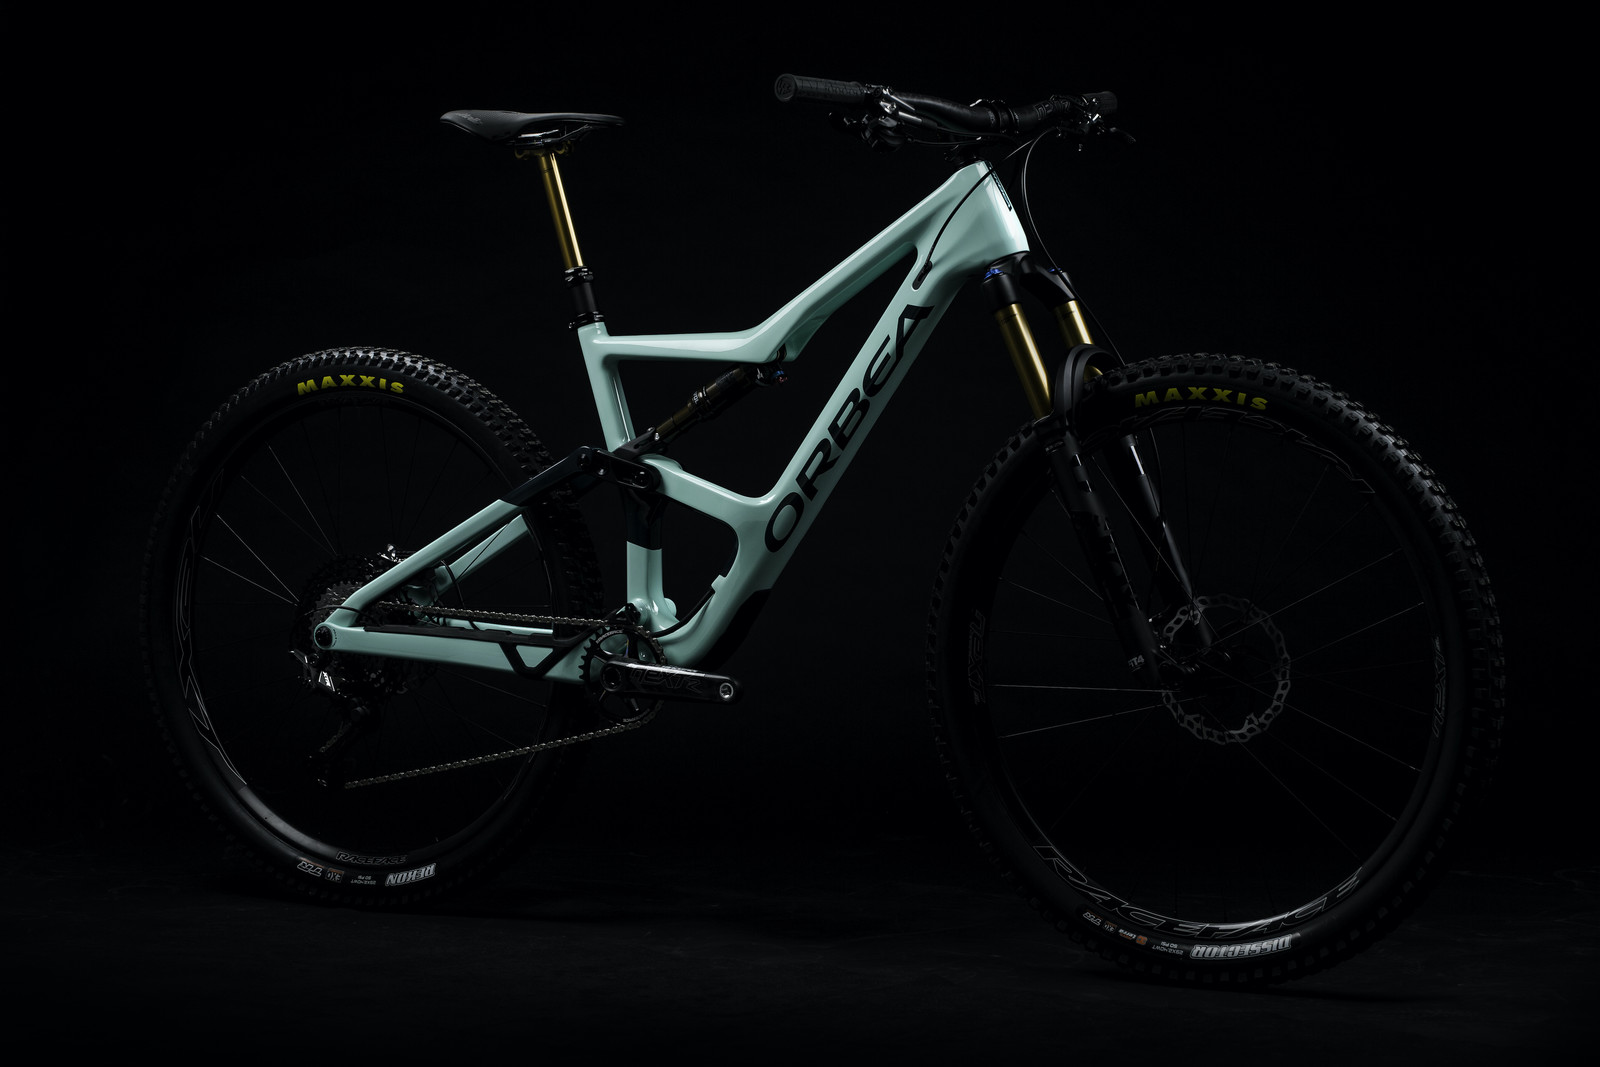 Orbea Launches the 2022 Occam and Occam LT Line